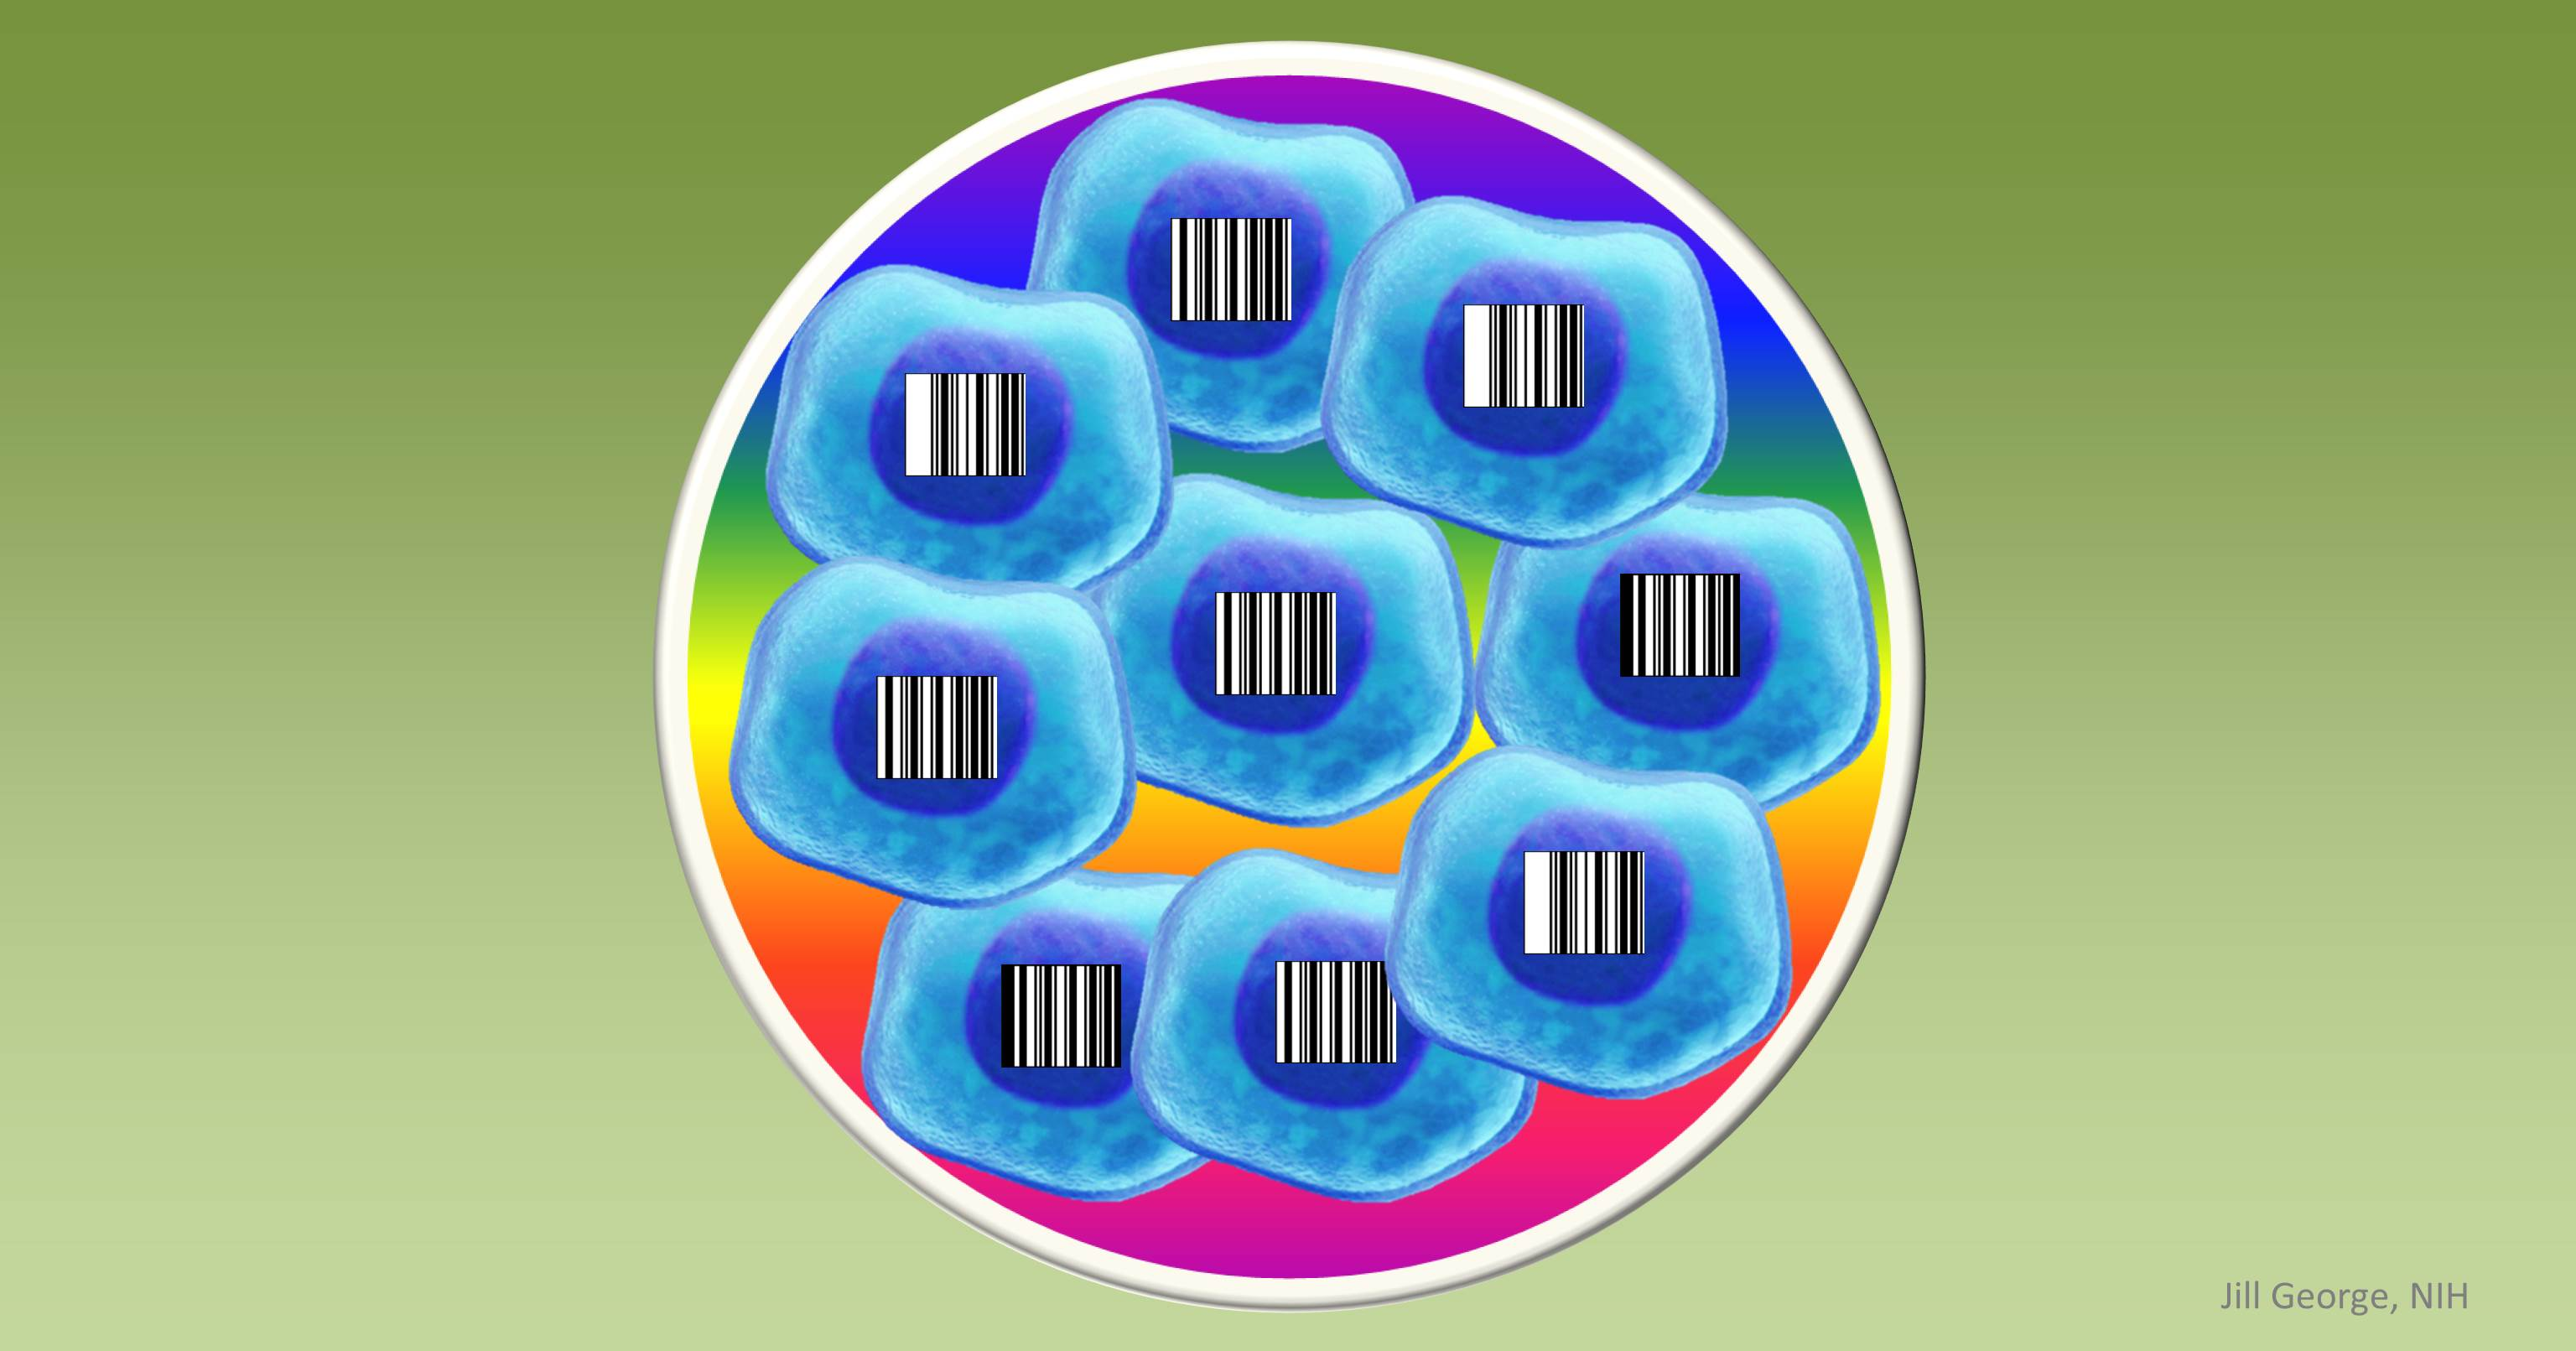 Cells labeled with barcodes